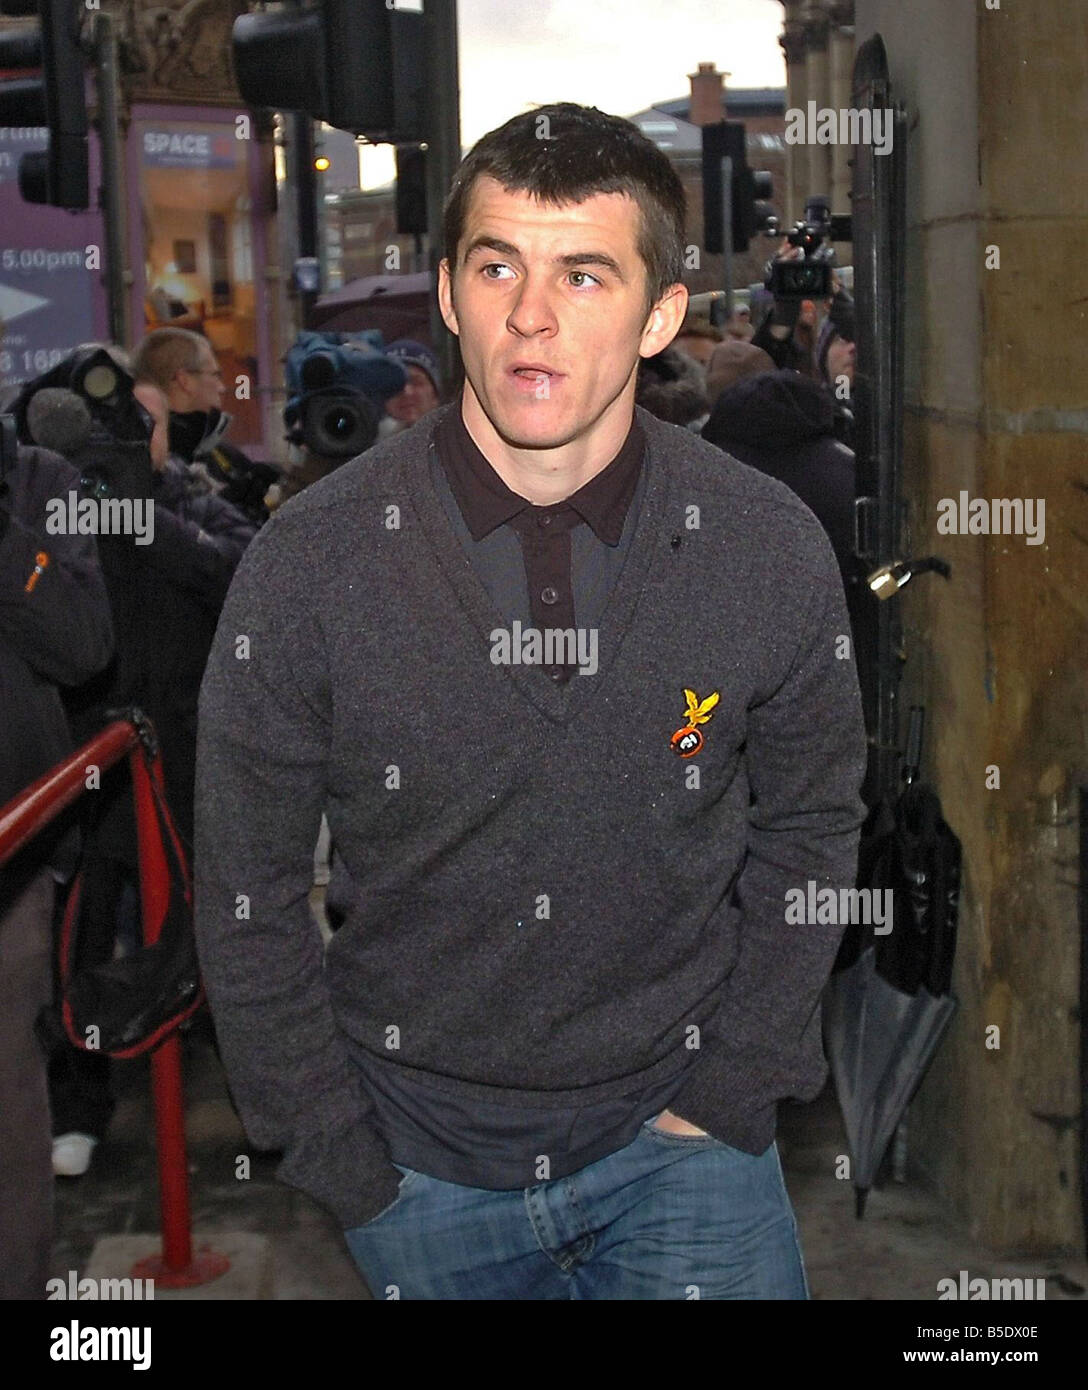 Newcastle United footballer Joey Barton larrives at Liverpool Magistrates Court appearing on assault charges He - Stock Image